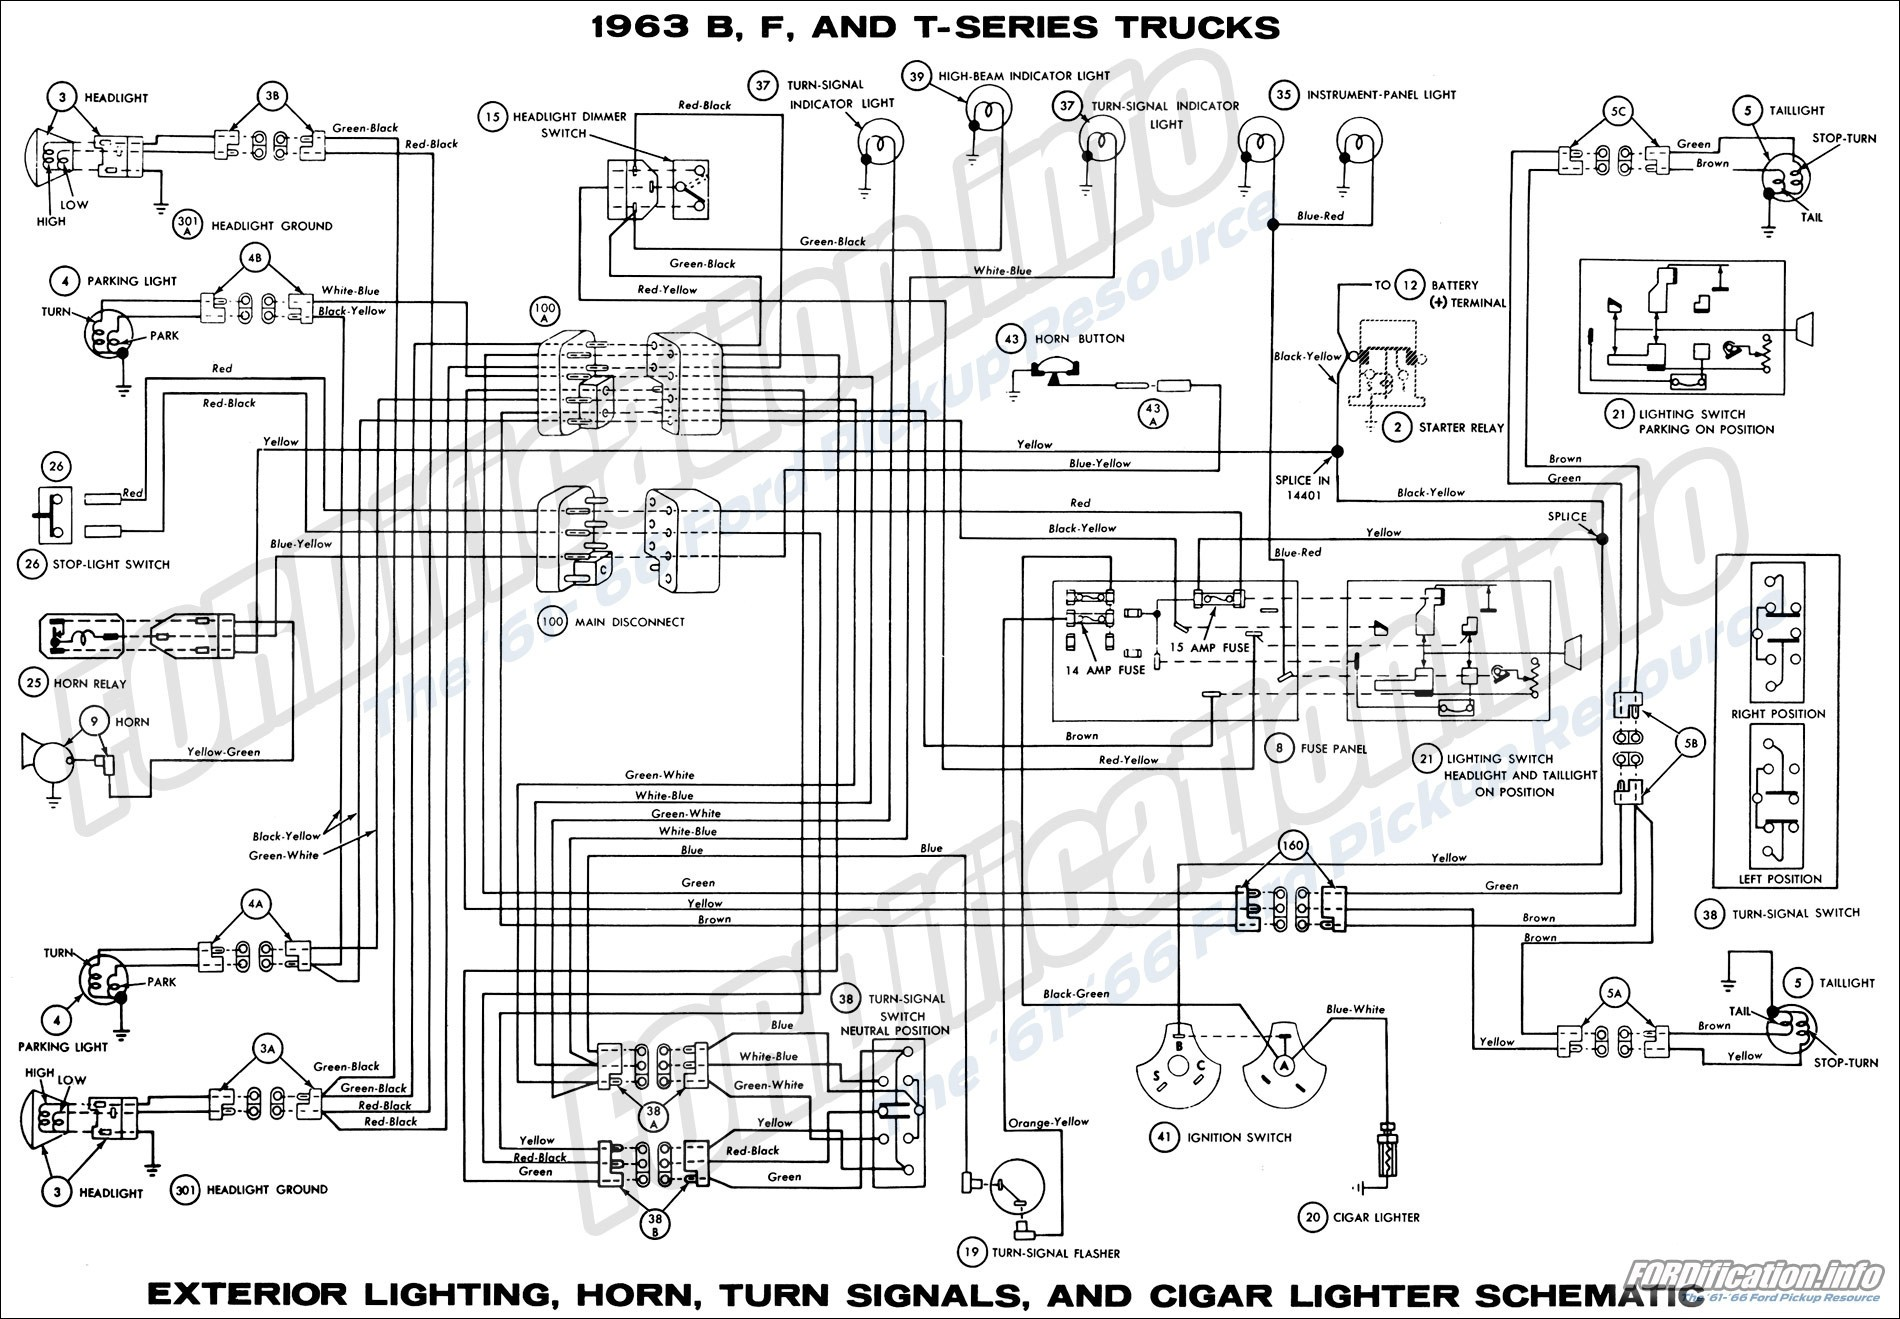 2004 Ford F150 Stereo Wiring Harness Diagram